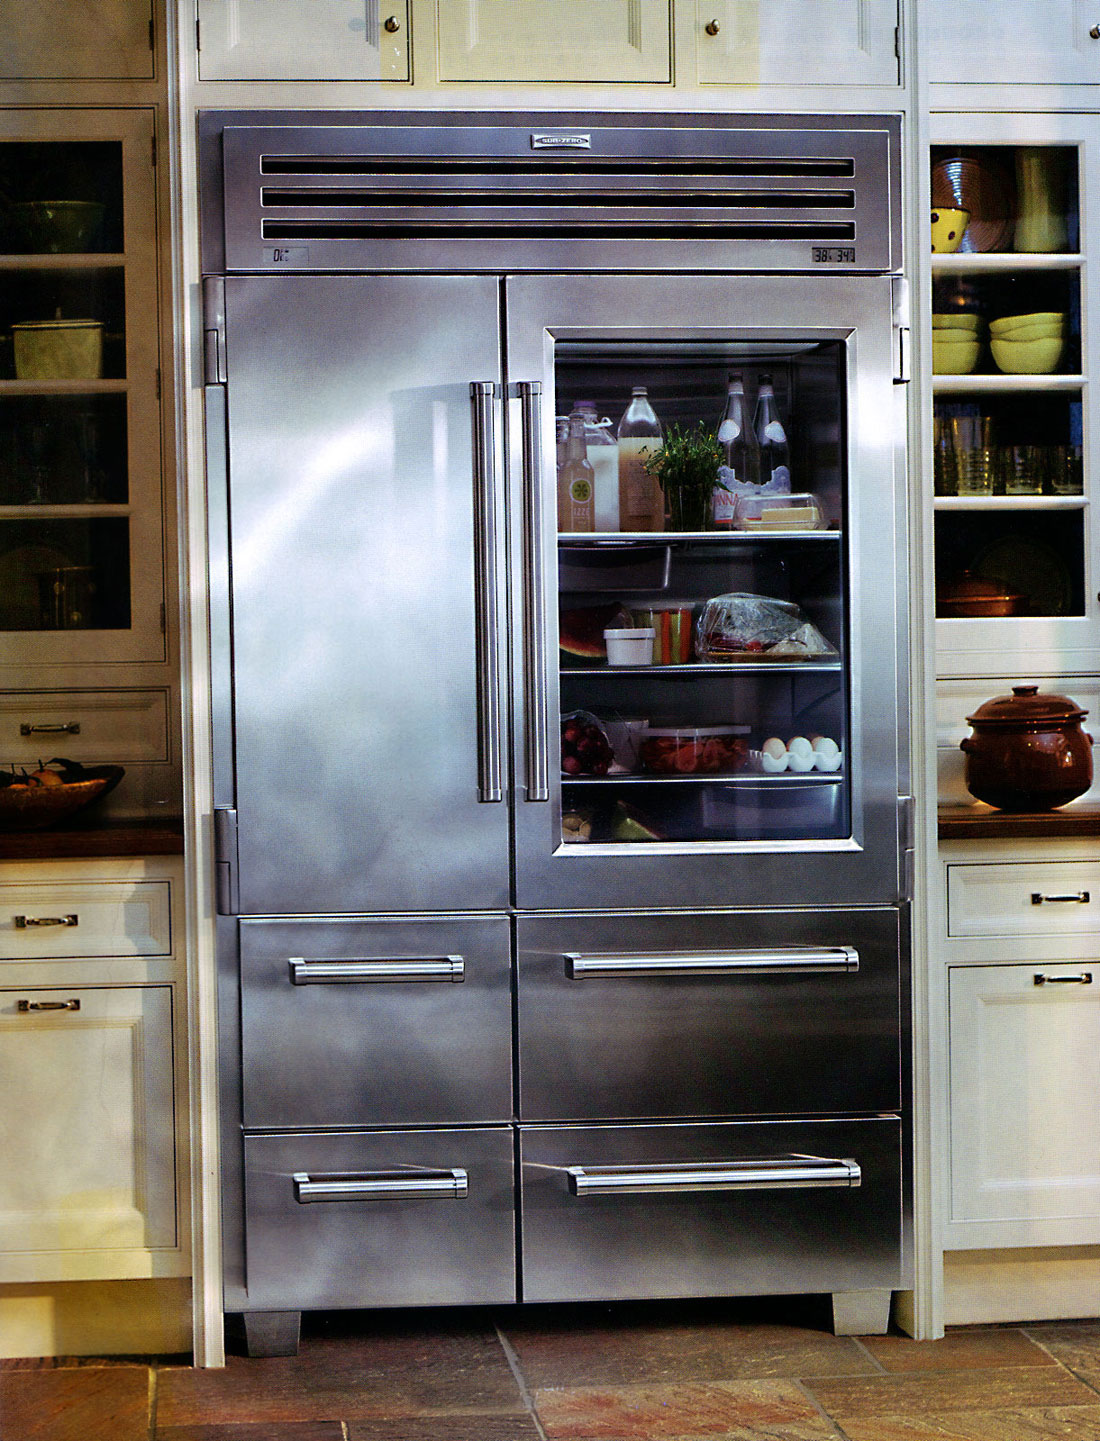 1441 #67482E Glass Front Refrigerator For Home Showcasing Shop Style In Private  save image Stainless Steel Front Doors For Homes 47671100